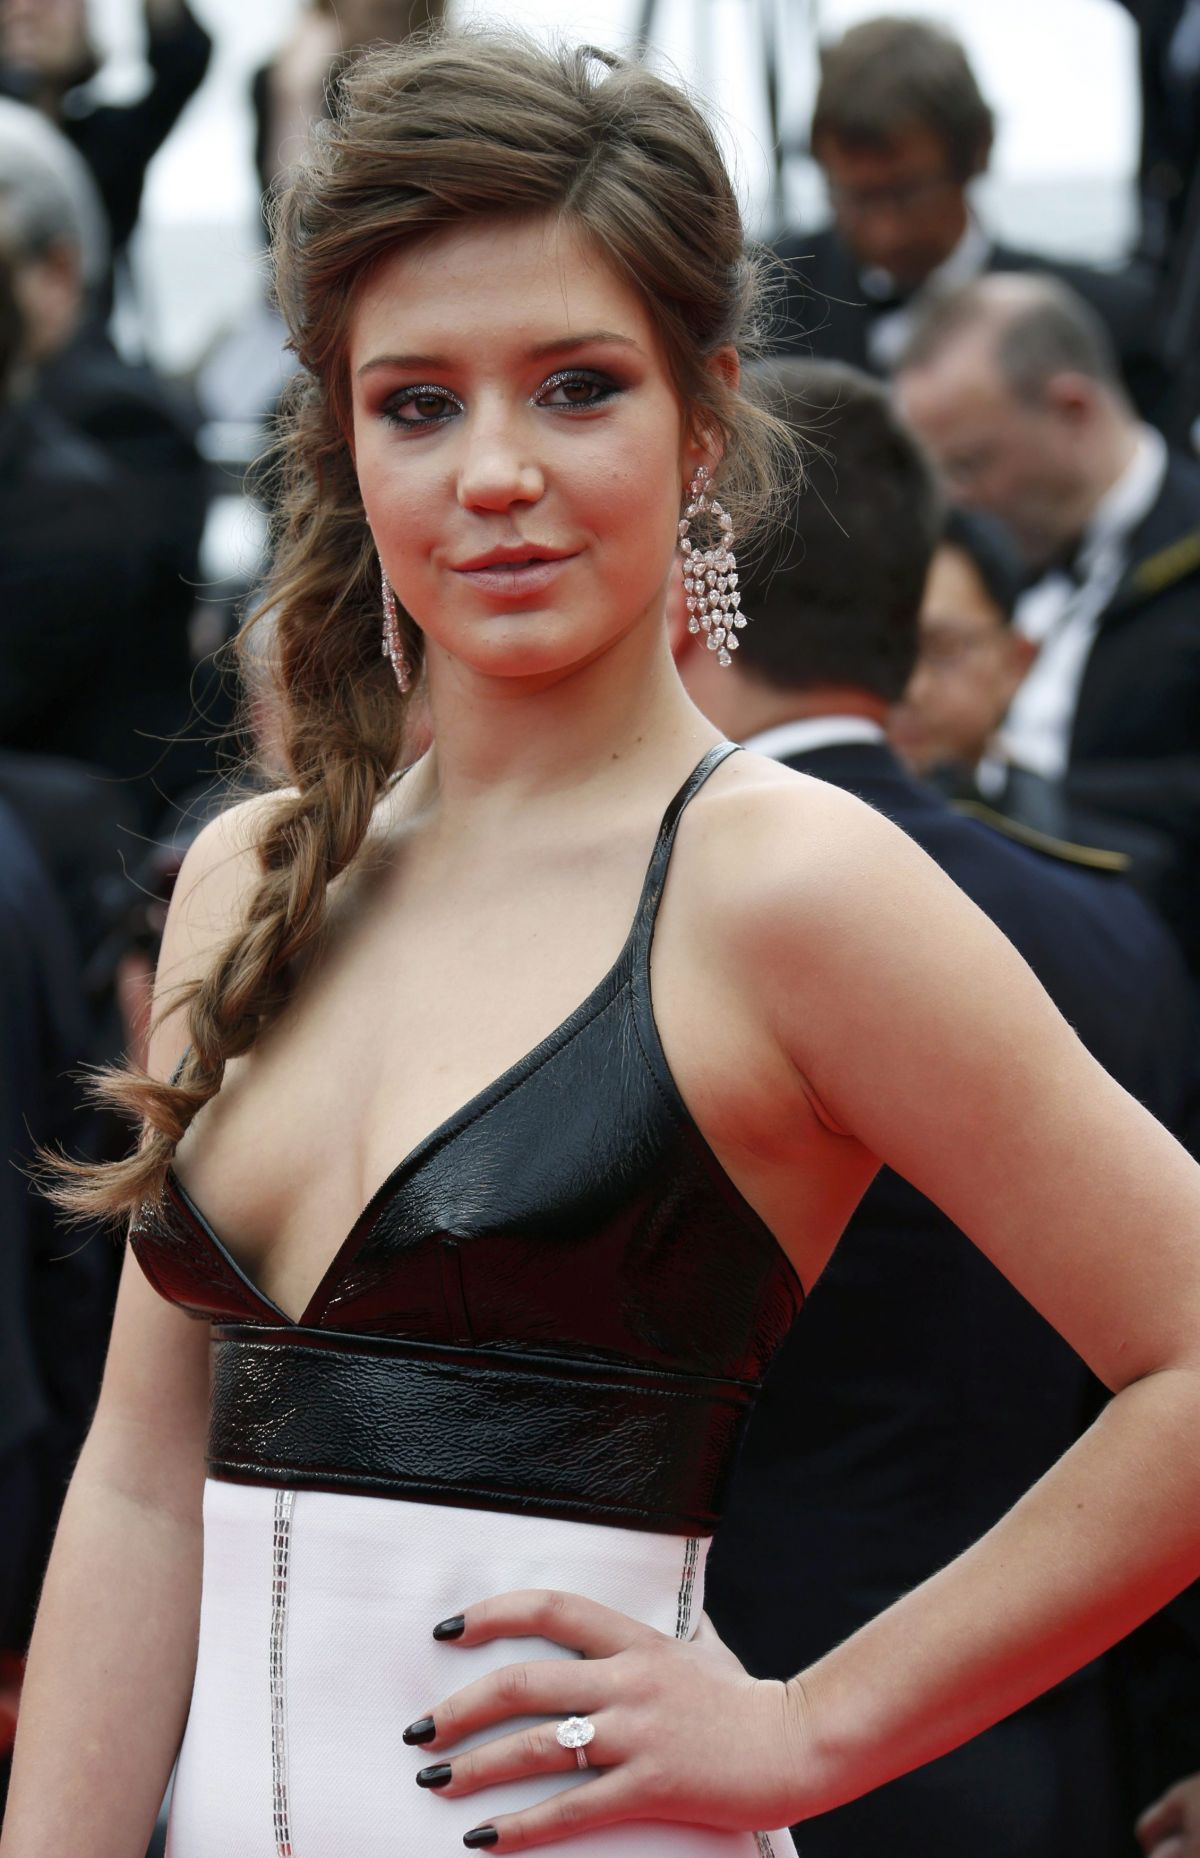 Adele Exarchopoulos naked (65 fotos), hot Ass, Snapchat, see through 2016